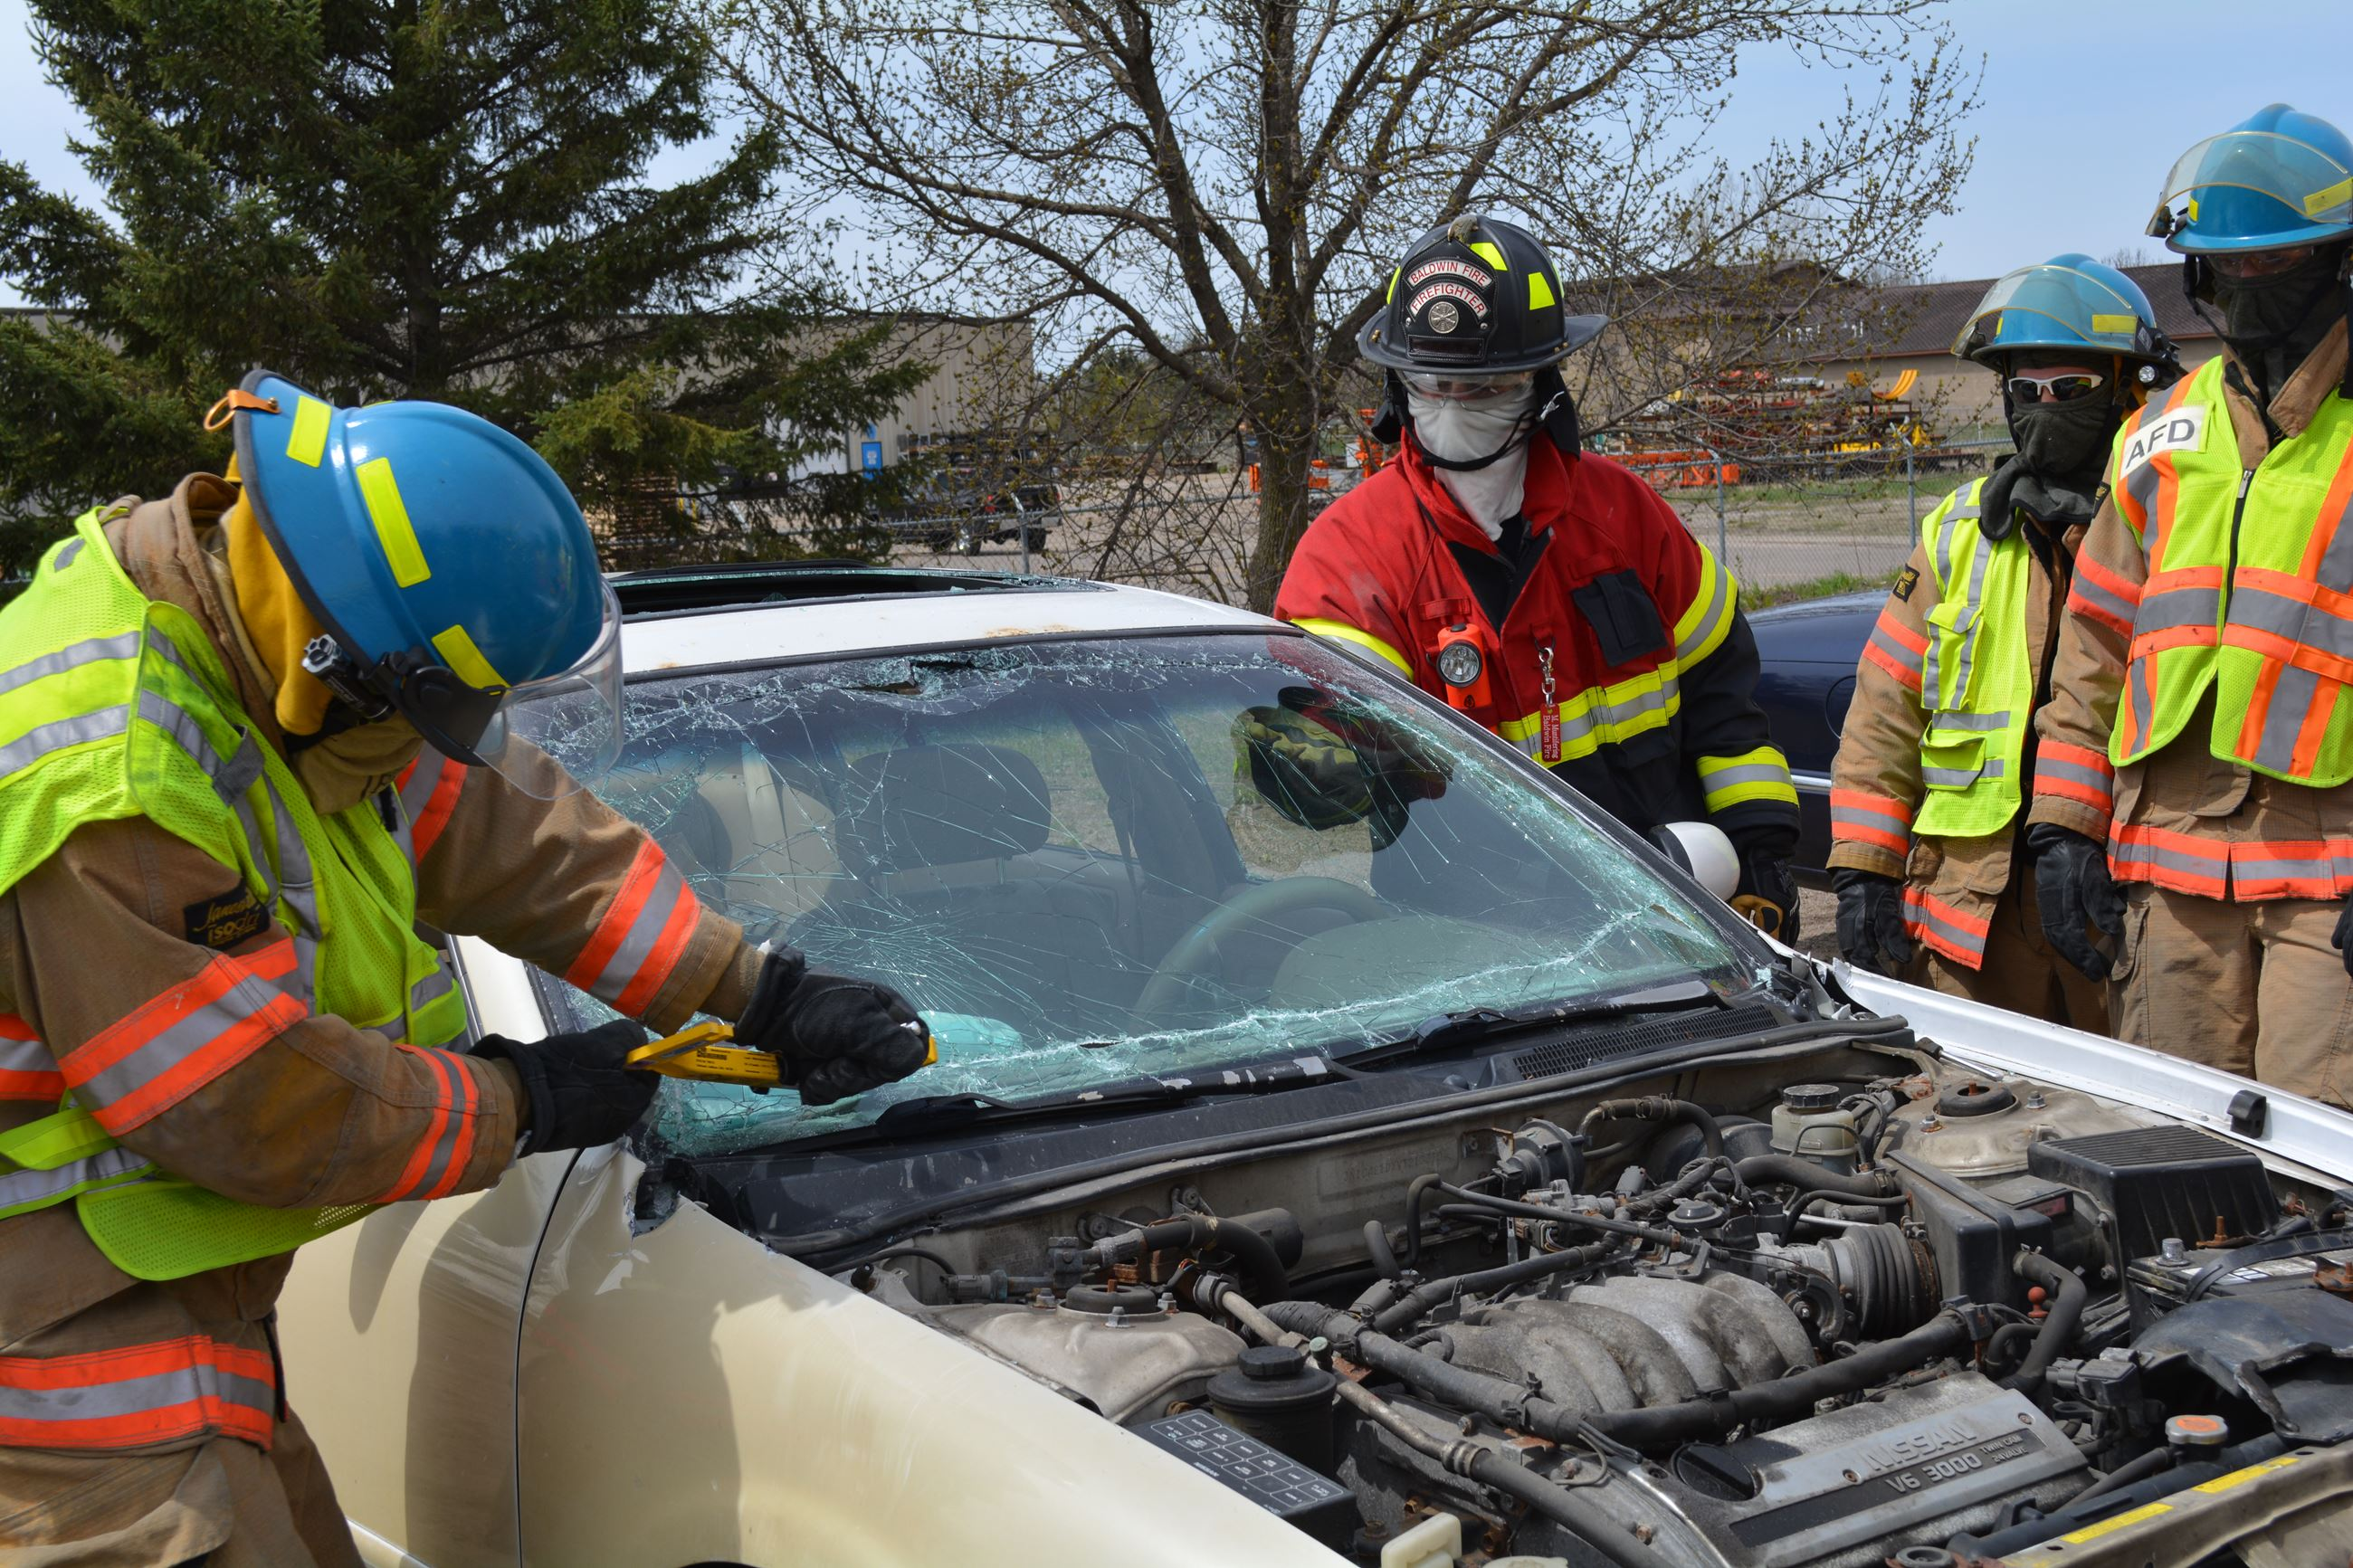 Extrication Training - Car